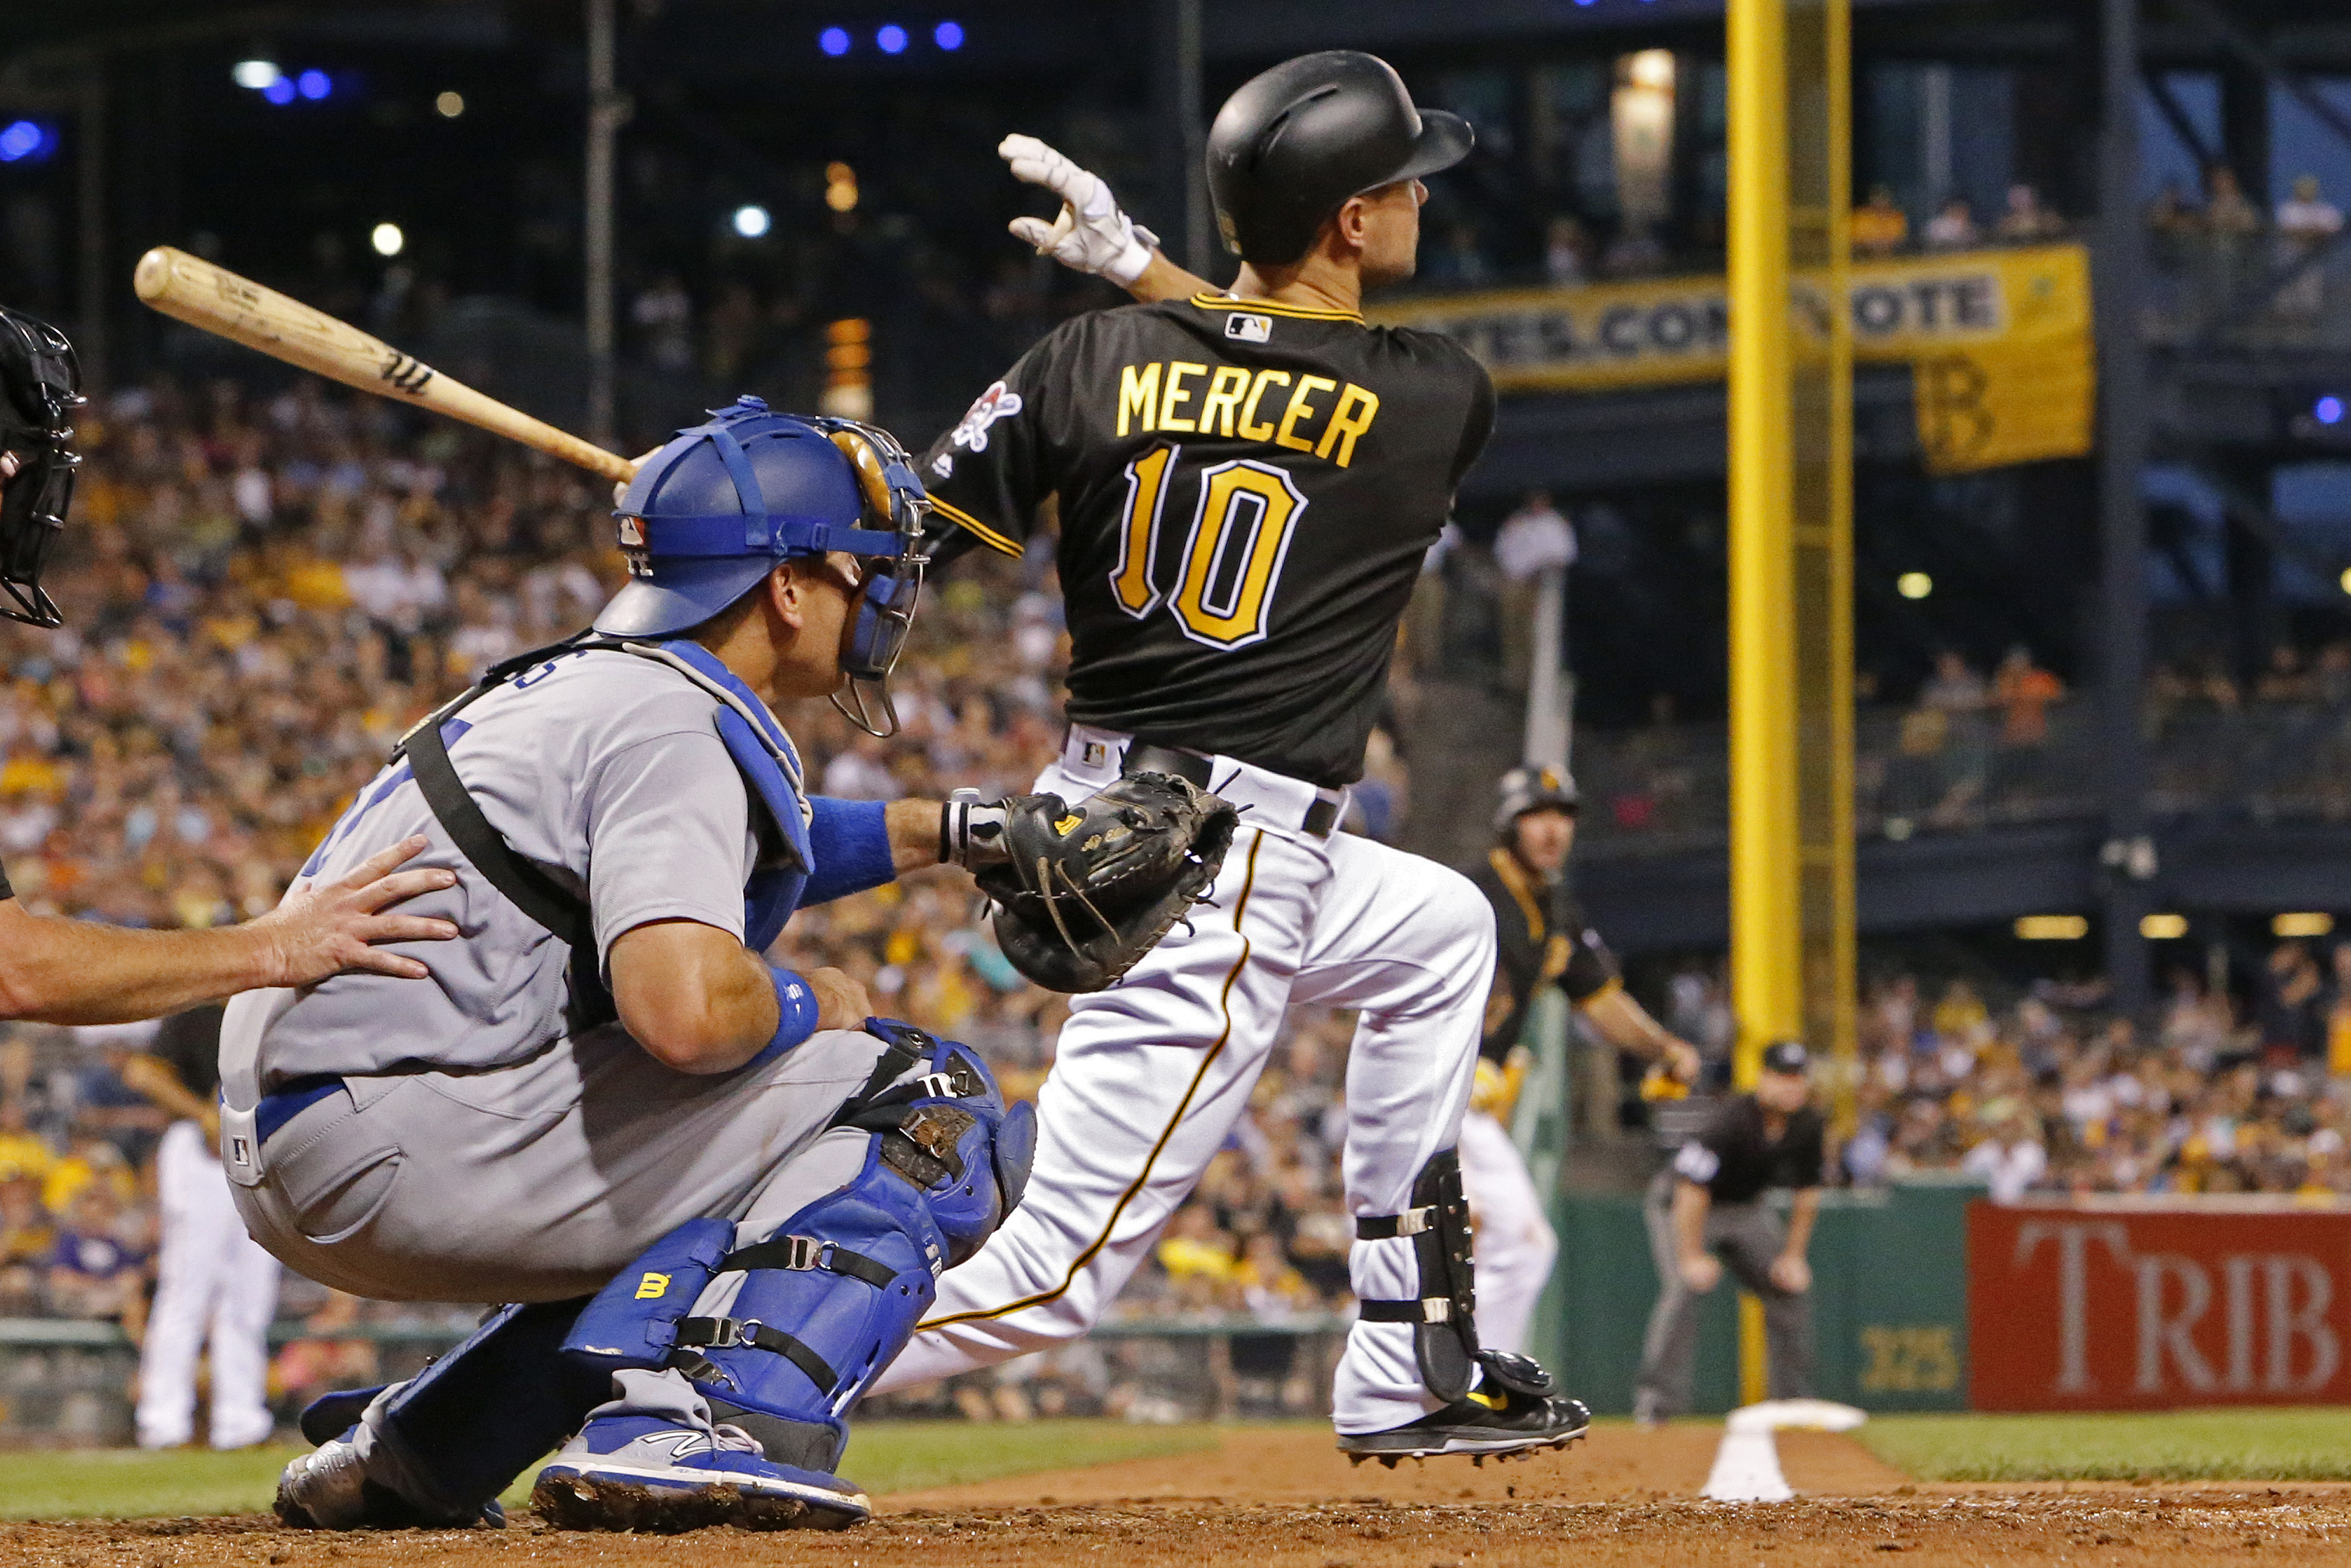 Pittsburgh Pirates' Jordy Mercer (10) hits a two-run home run off Los Angeles Dodgers relief pitcher Joe Blanton in the sixth inning of a baseball game in Pittsburgh, Saturday, June 25, 2016. (AP Photo/Gene J. Puskar)